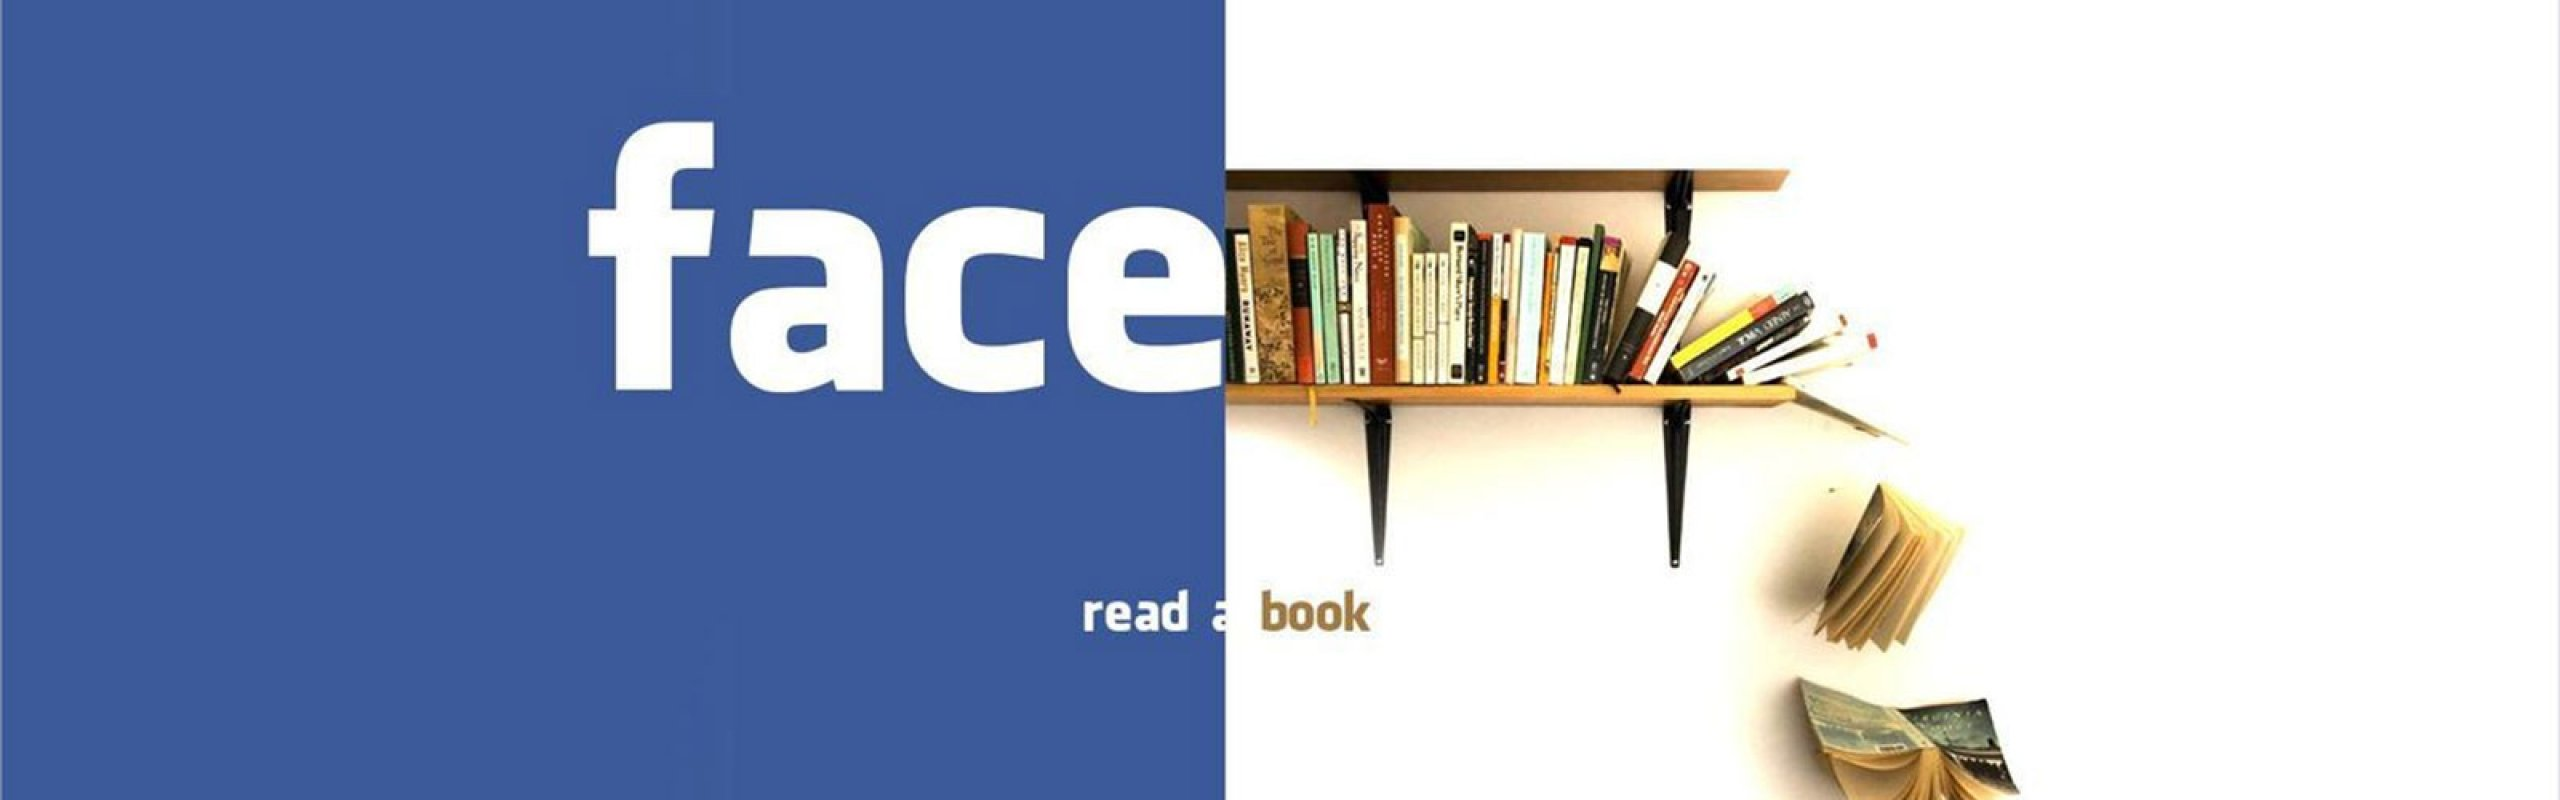 The magic of books or the magic of Facebook?